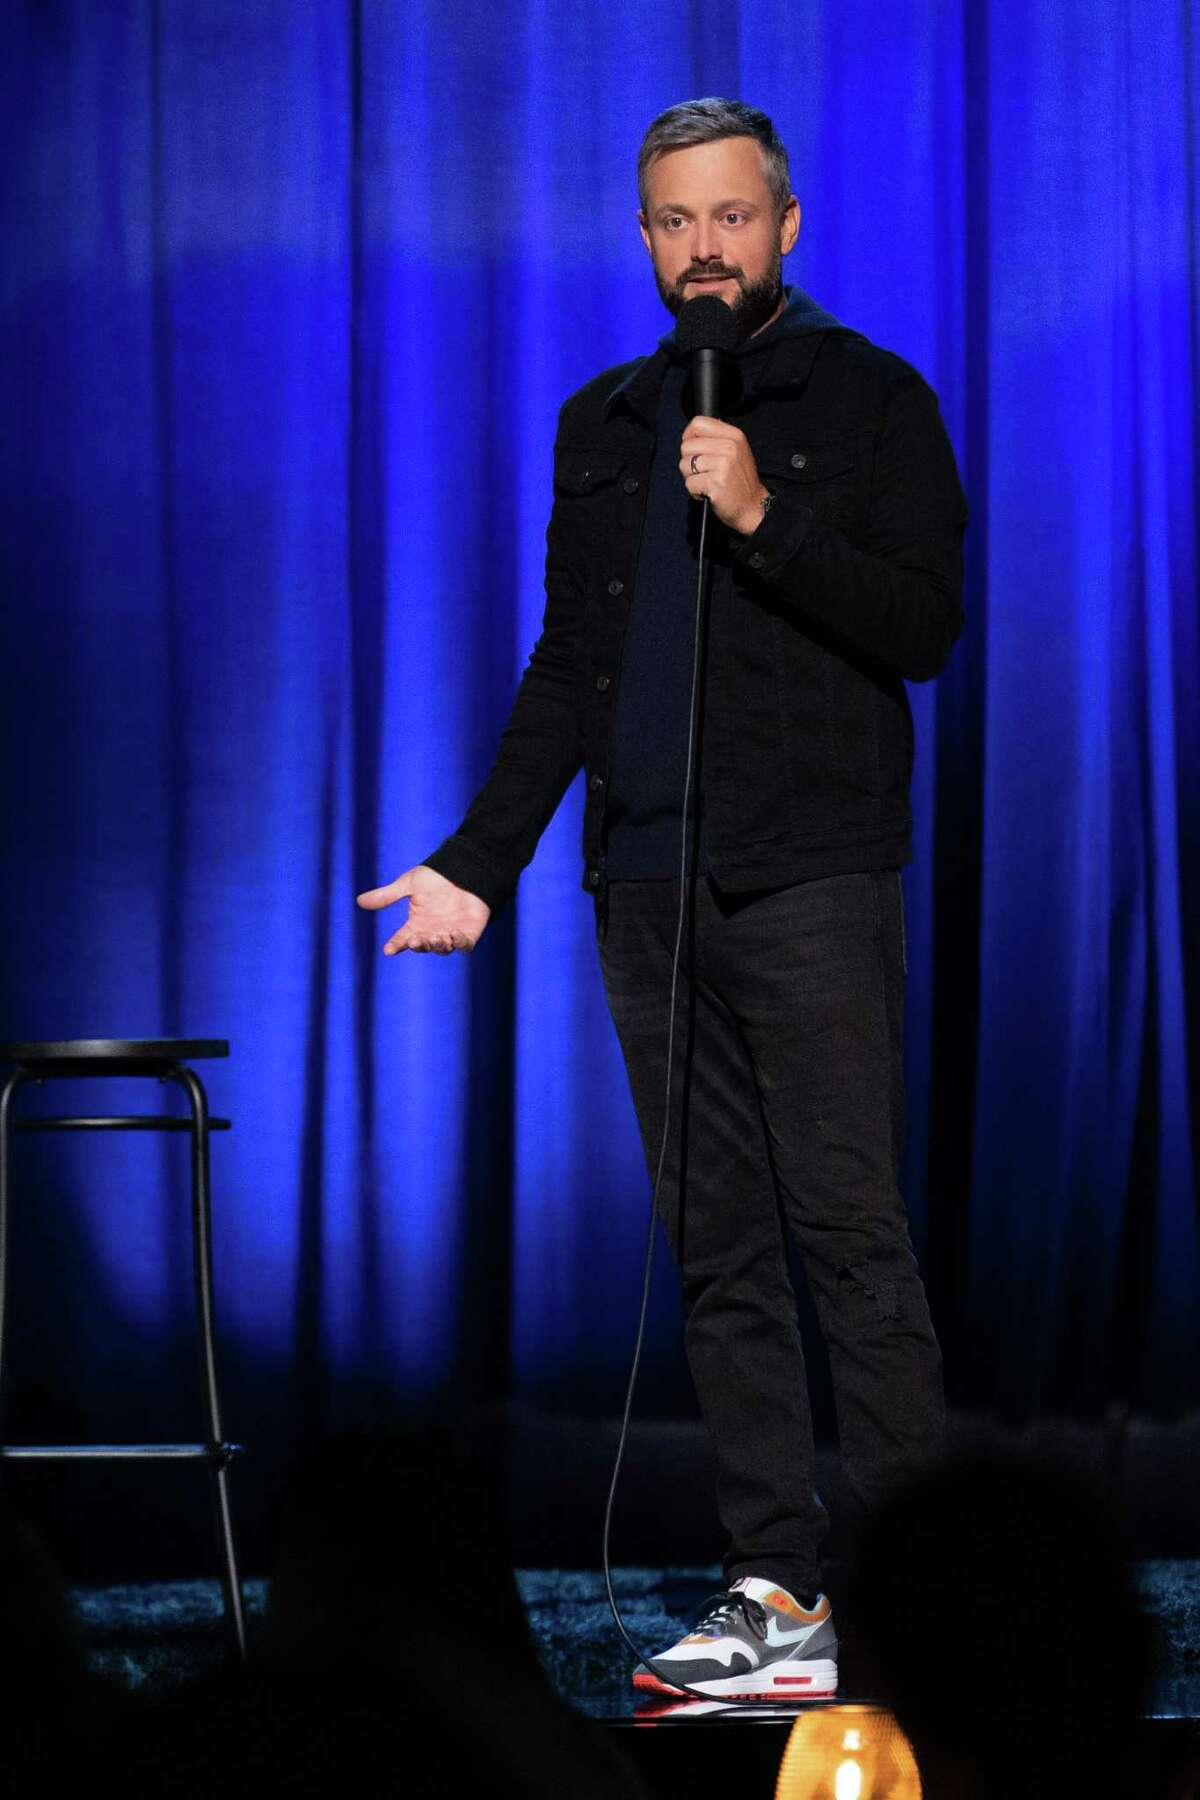 Comedian Nate Bargatze's show at the Warner Theatre has been rescheduled for Sept. 18.